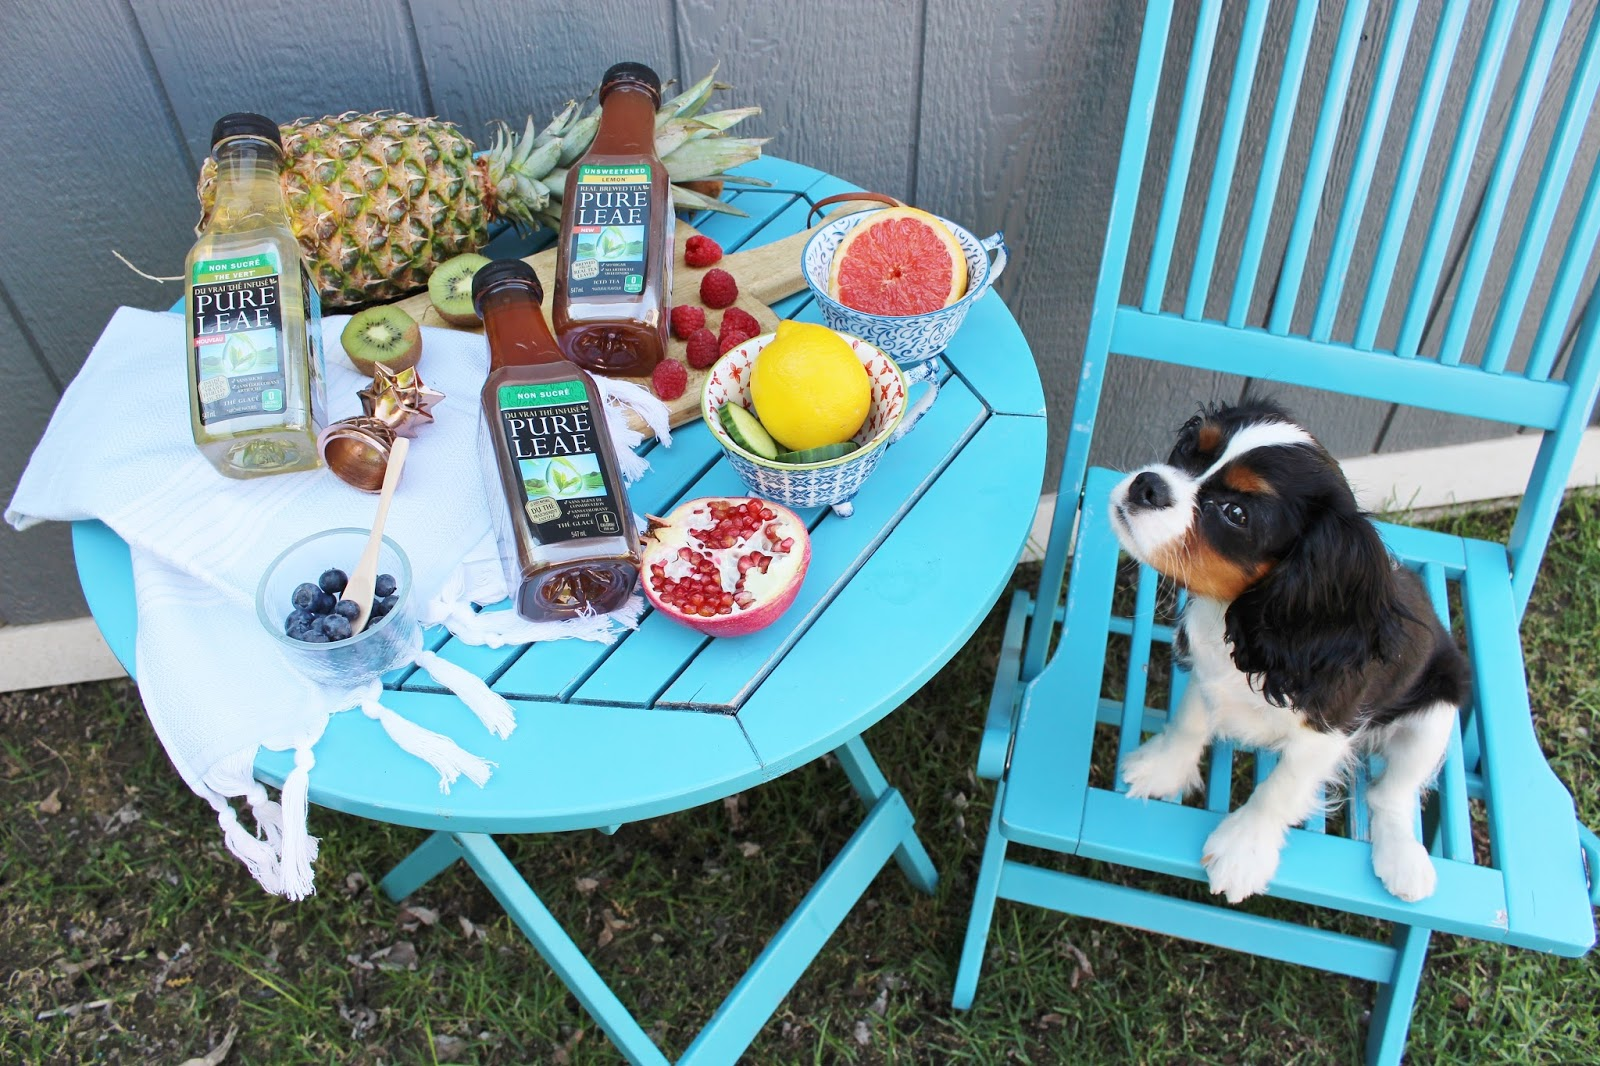 Pure Leaf unsweetened tea recipes for summer with Cavalier King Charles Spaniel